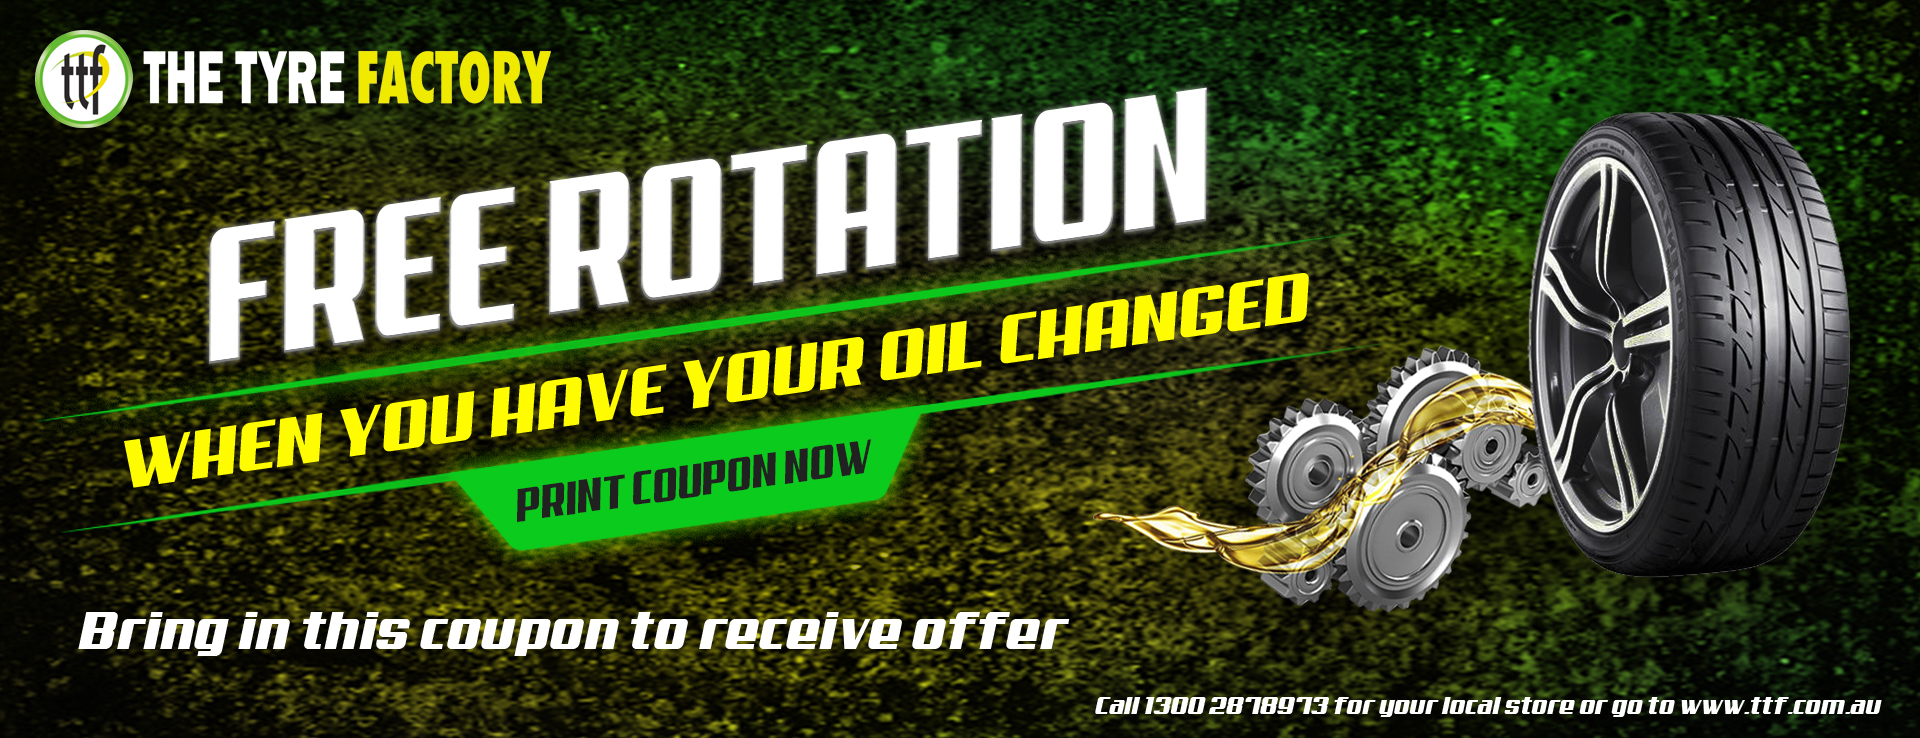 FREE ROTATION WHEN YOU HAVE YOUR OIL CHANGED